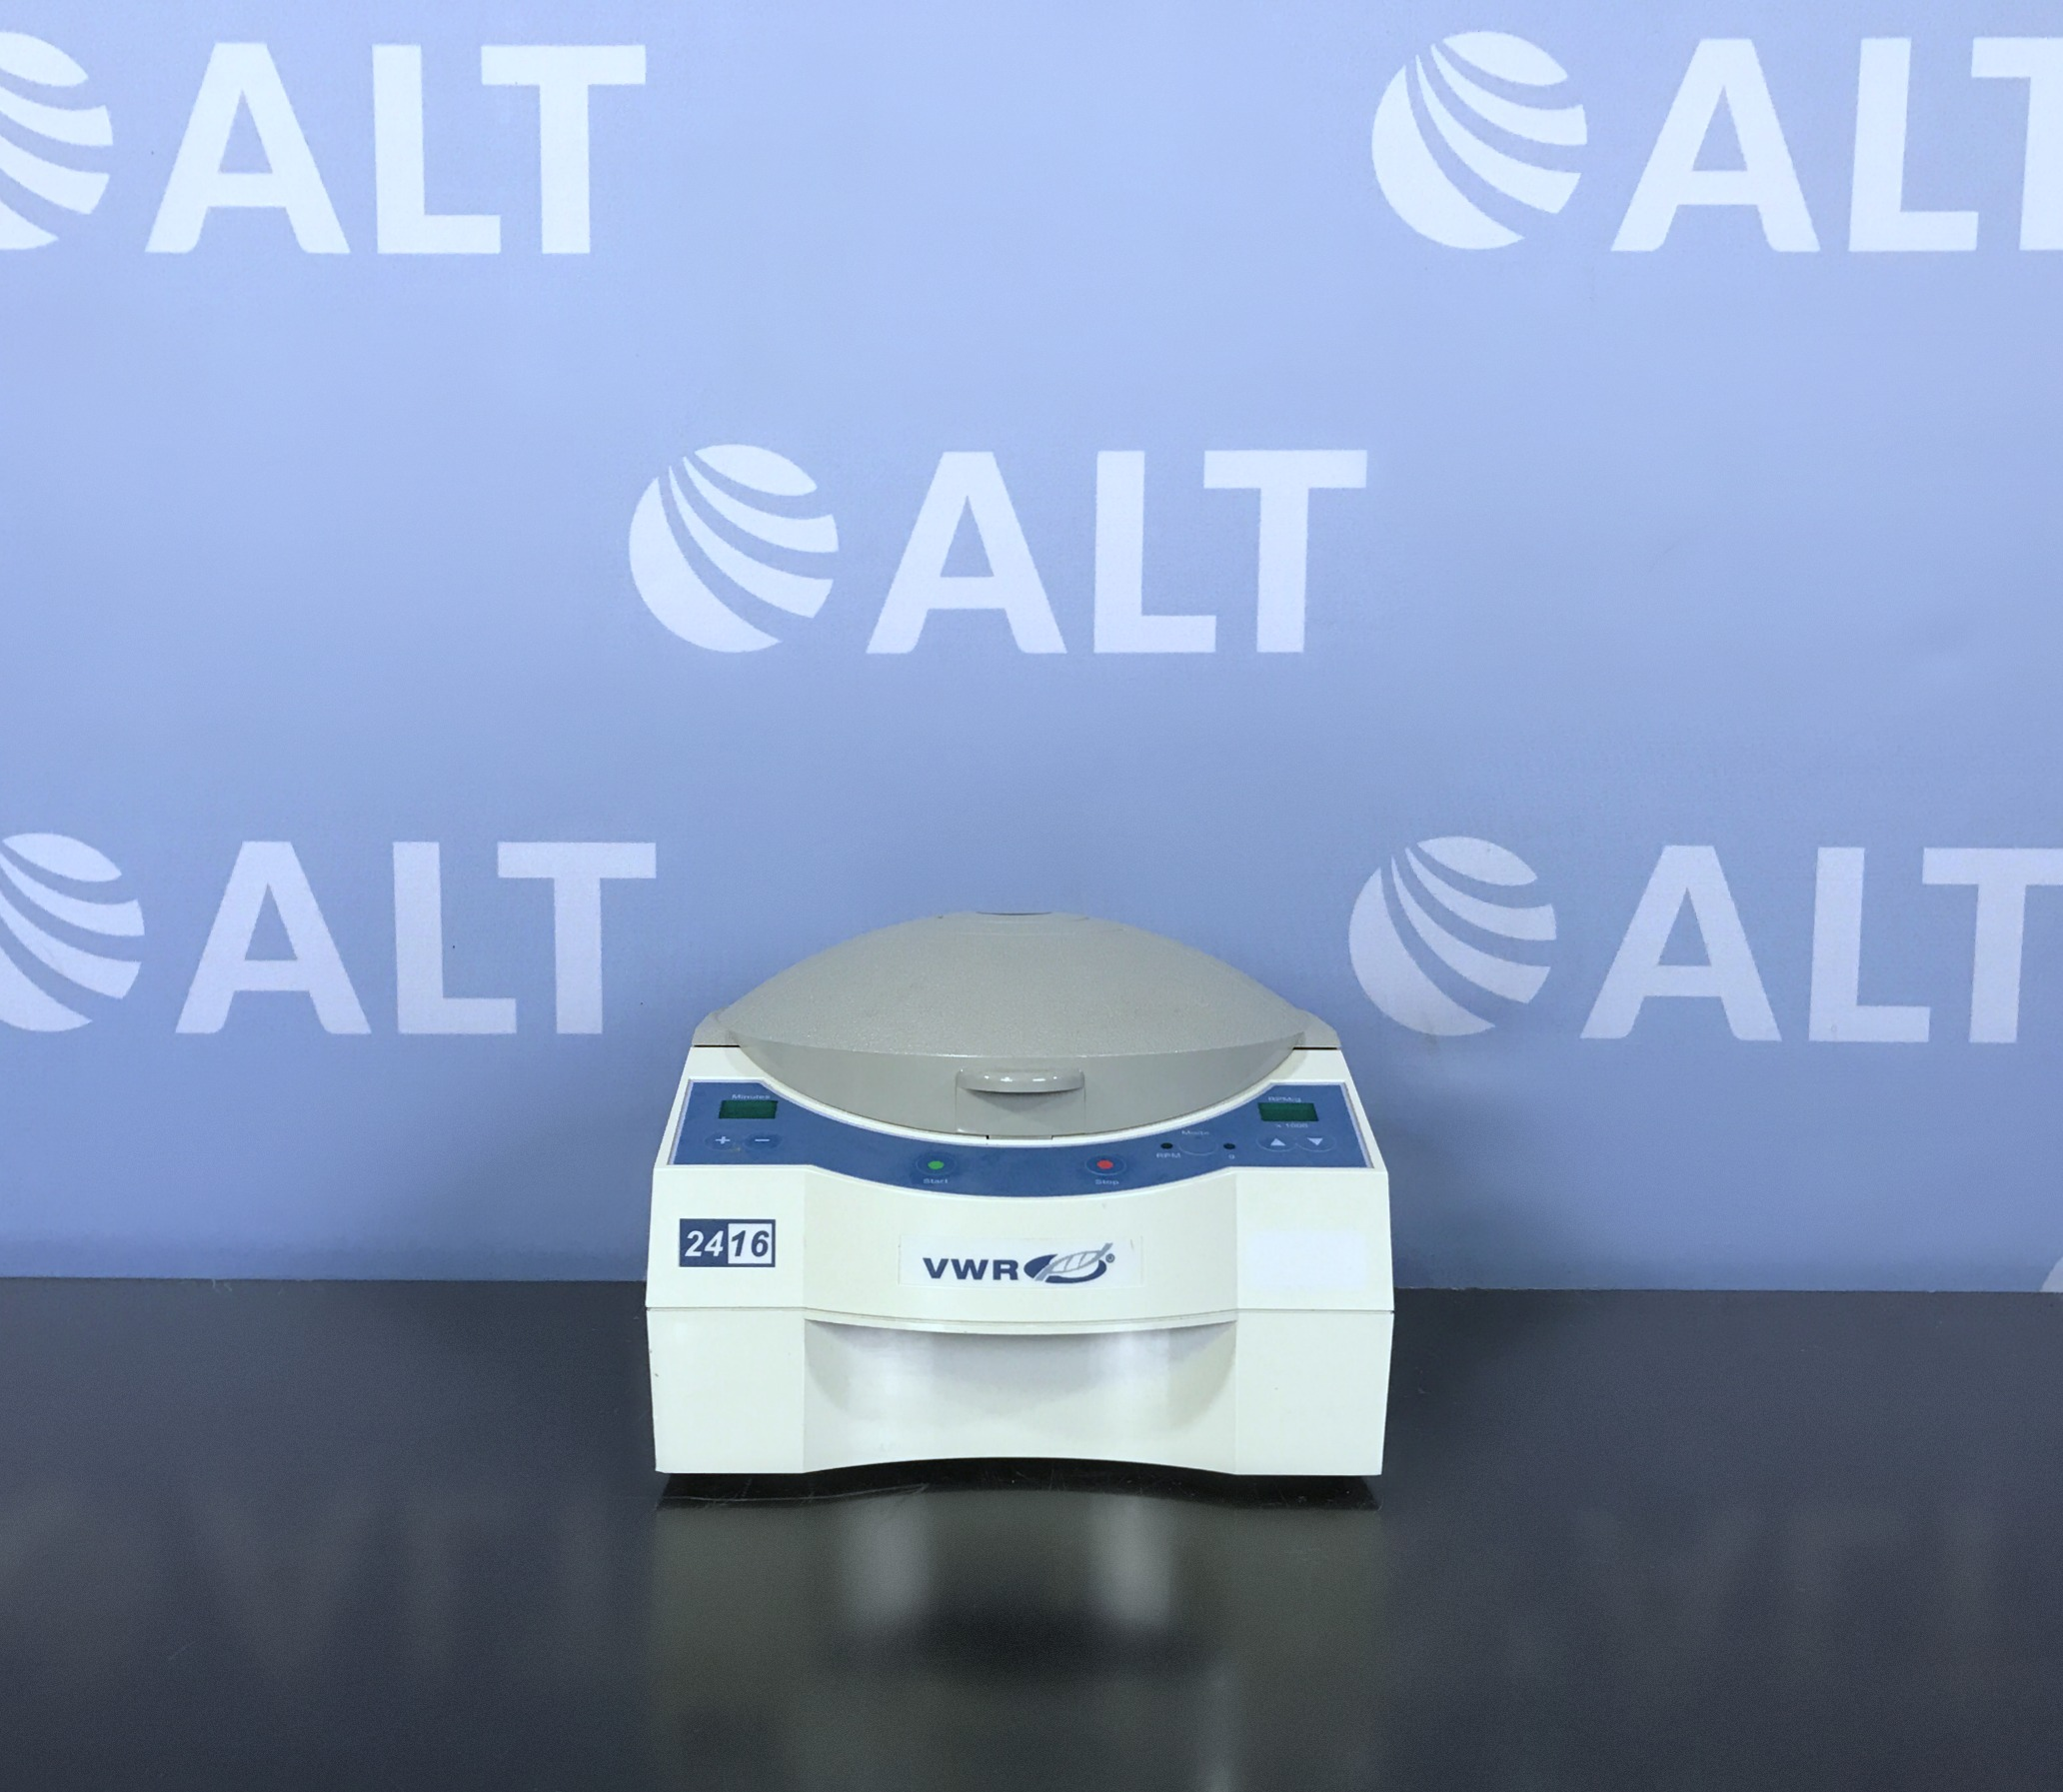 VWR Galaxy 16DH Digital Microcentrifuge Image